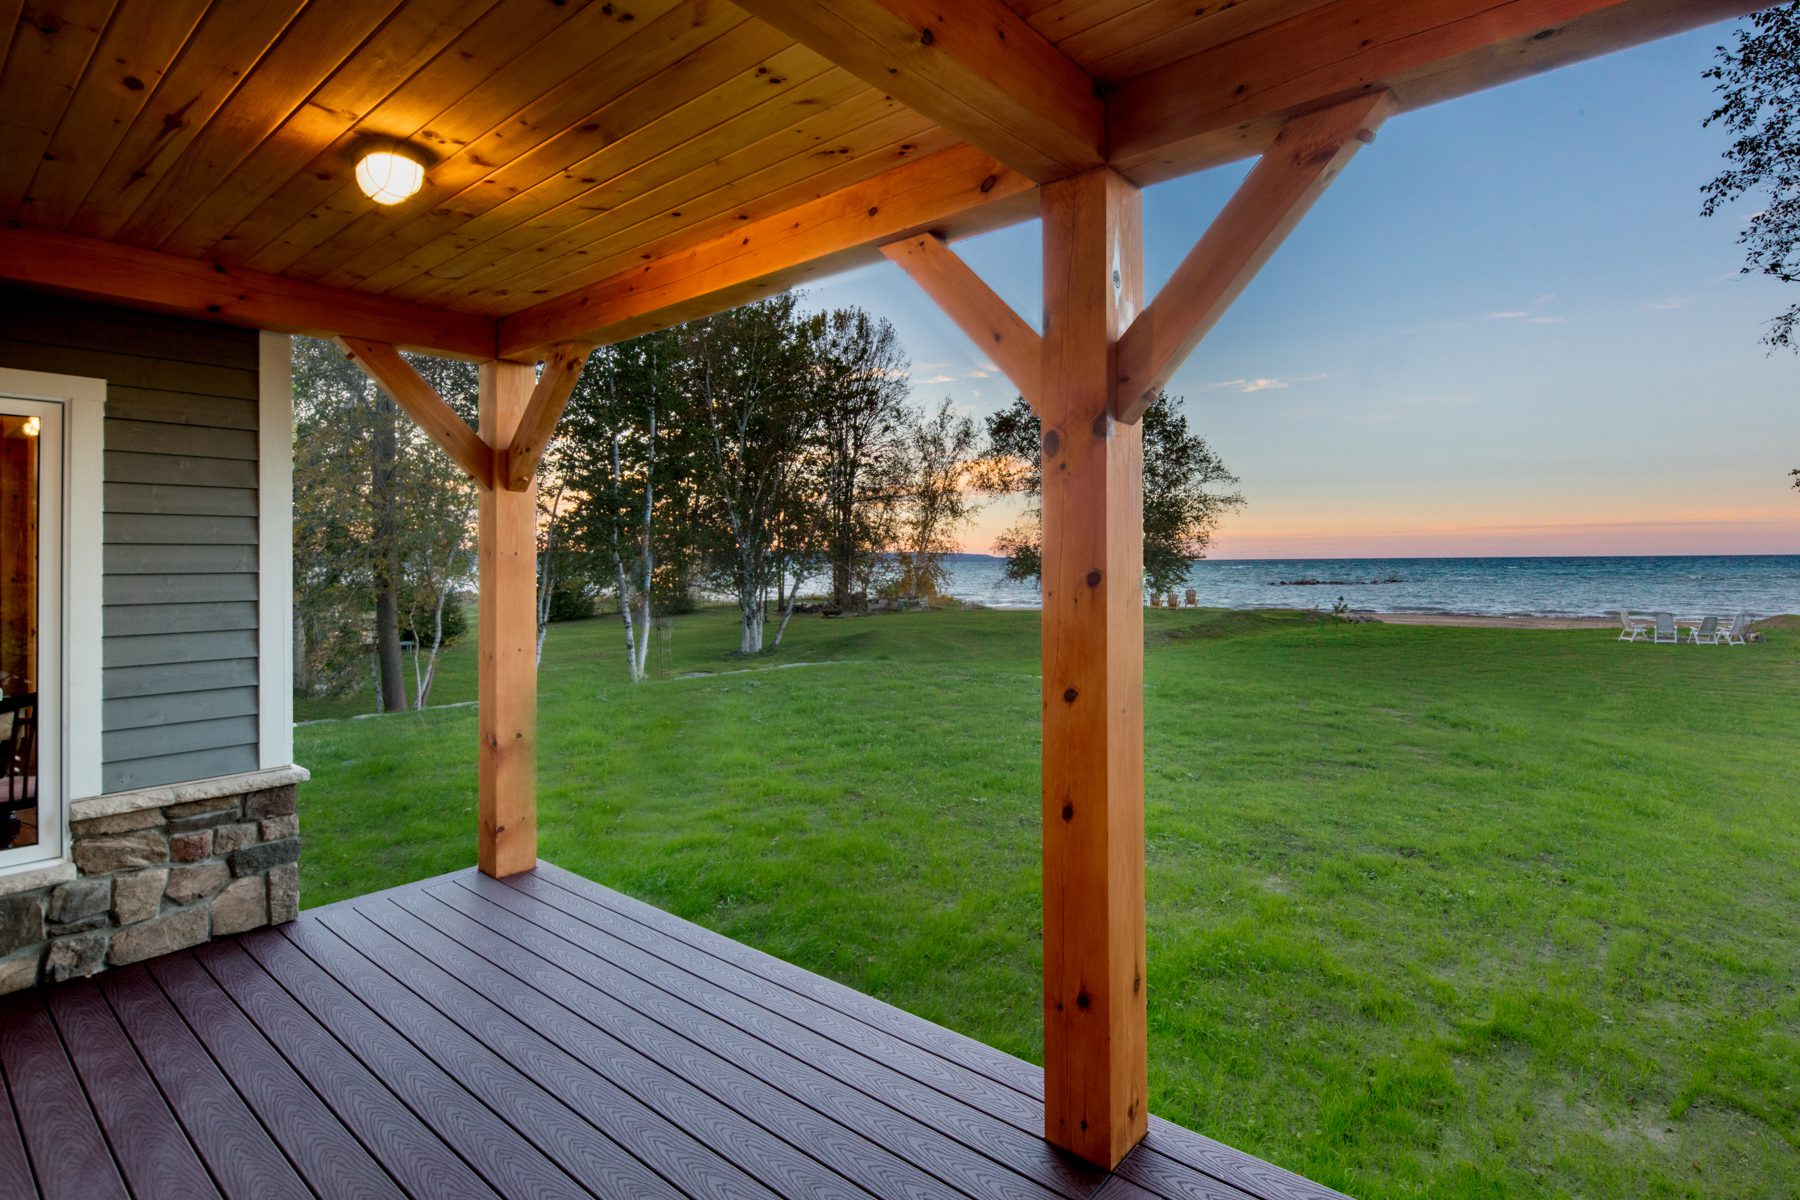 Normerica Timber Frame, Exterior, Cottage, Covered Porch, View of the Lake